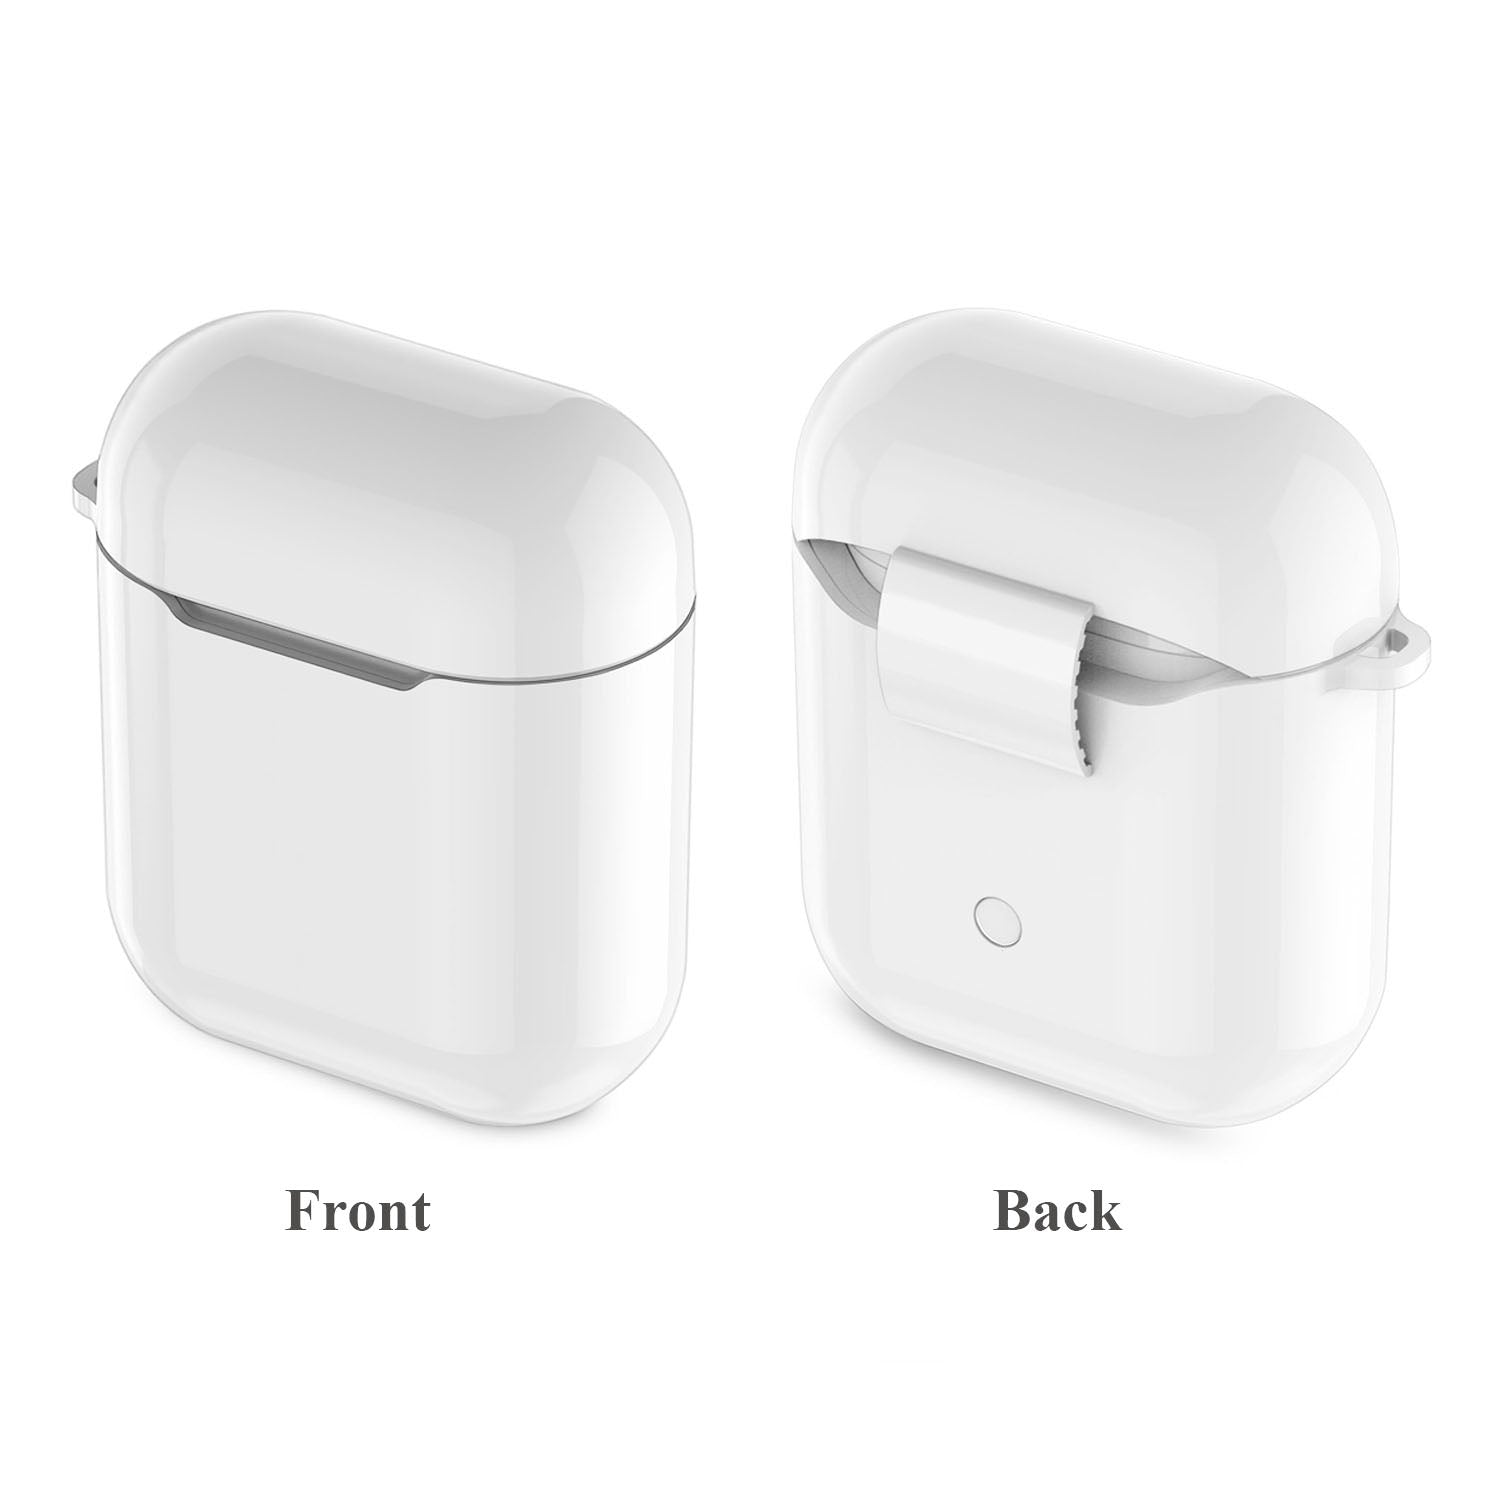 on sale ebc03 87570 Wireless Carrying Case for Apple AirPods Charging Case,Protective Case  Compatible with QI Wireless Charger by Leakind